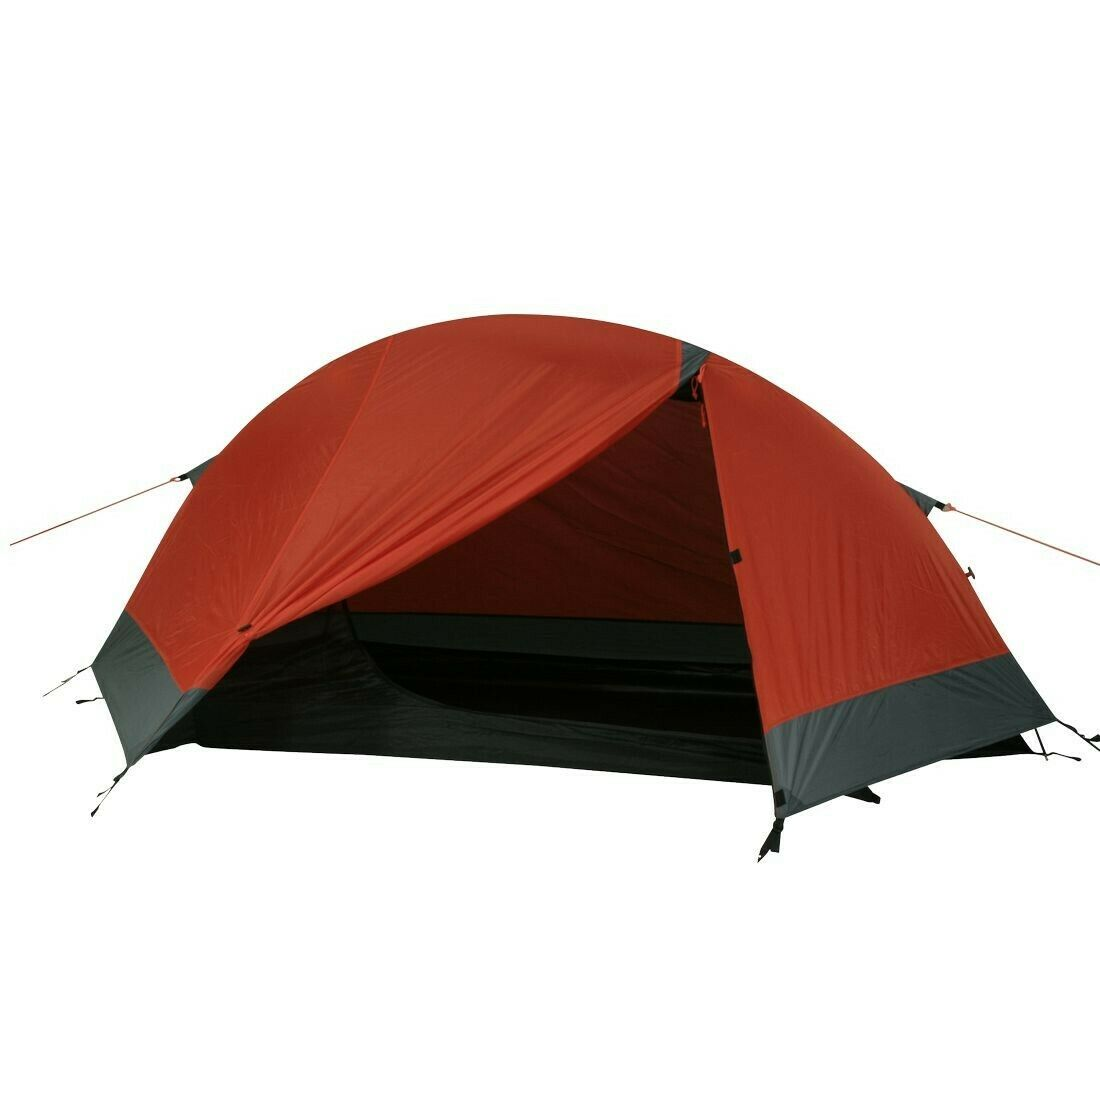 Silicone Sky 1 dome tent 1 pers single bow tent waterproof 5000mm orange-red